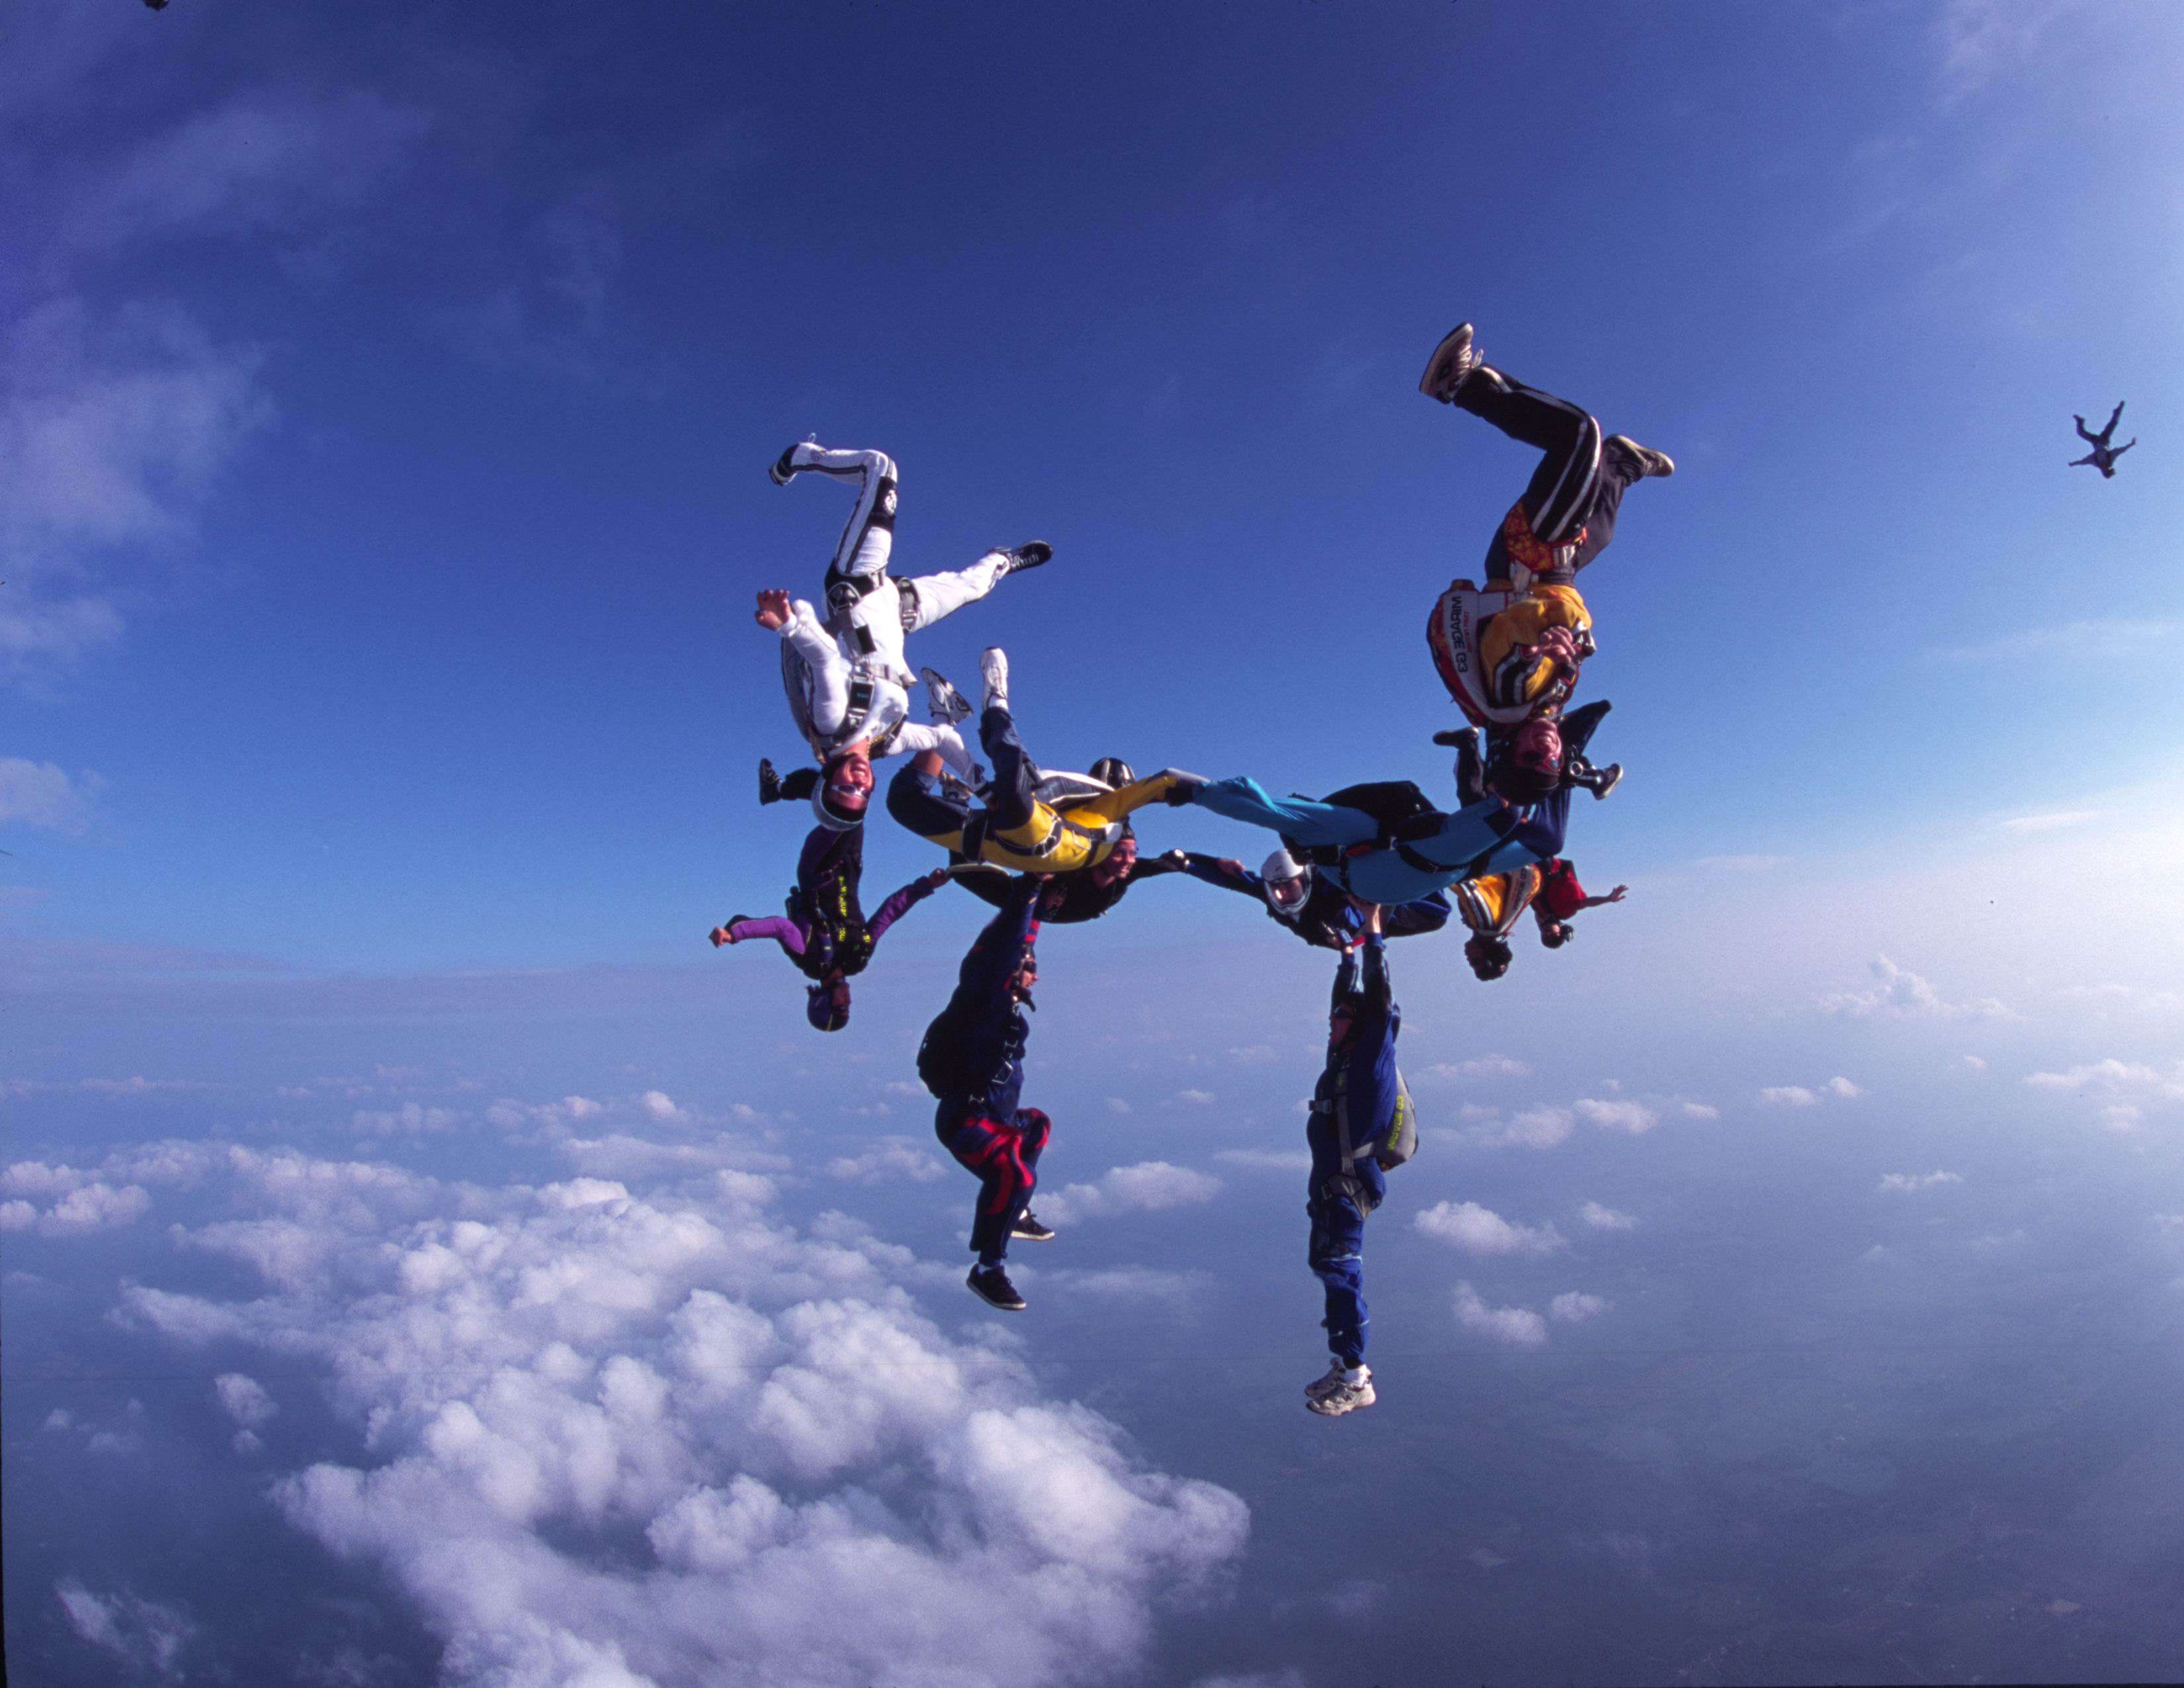 Photo Gallery - The Official Website Of Extreme Team Sports Extreme team sports photos